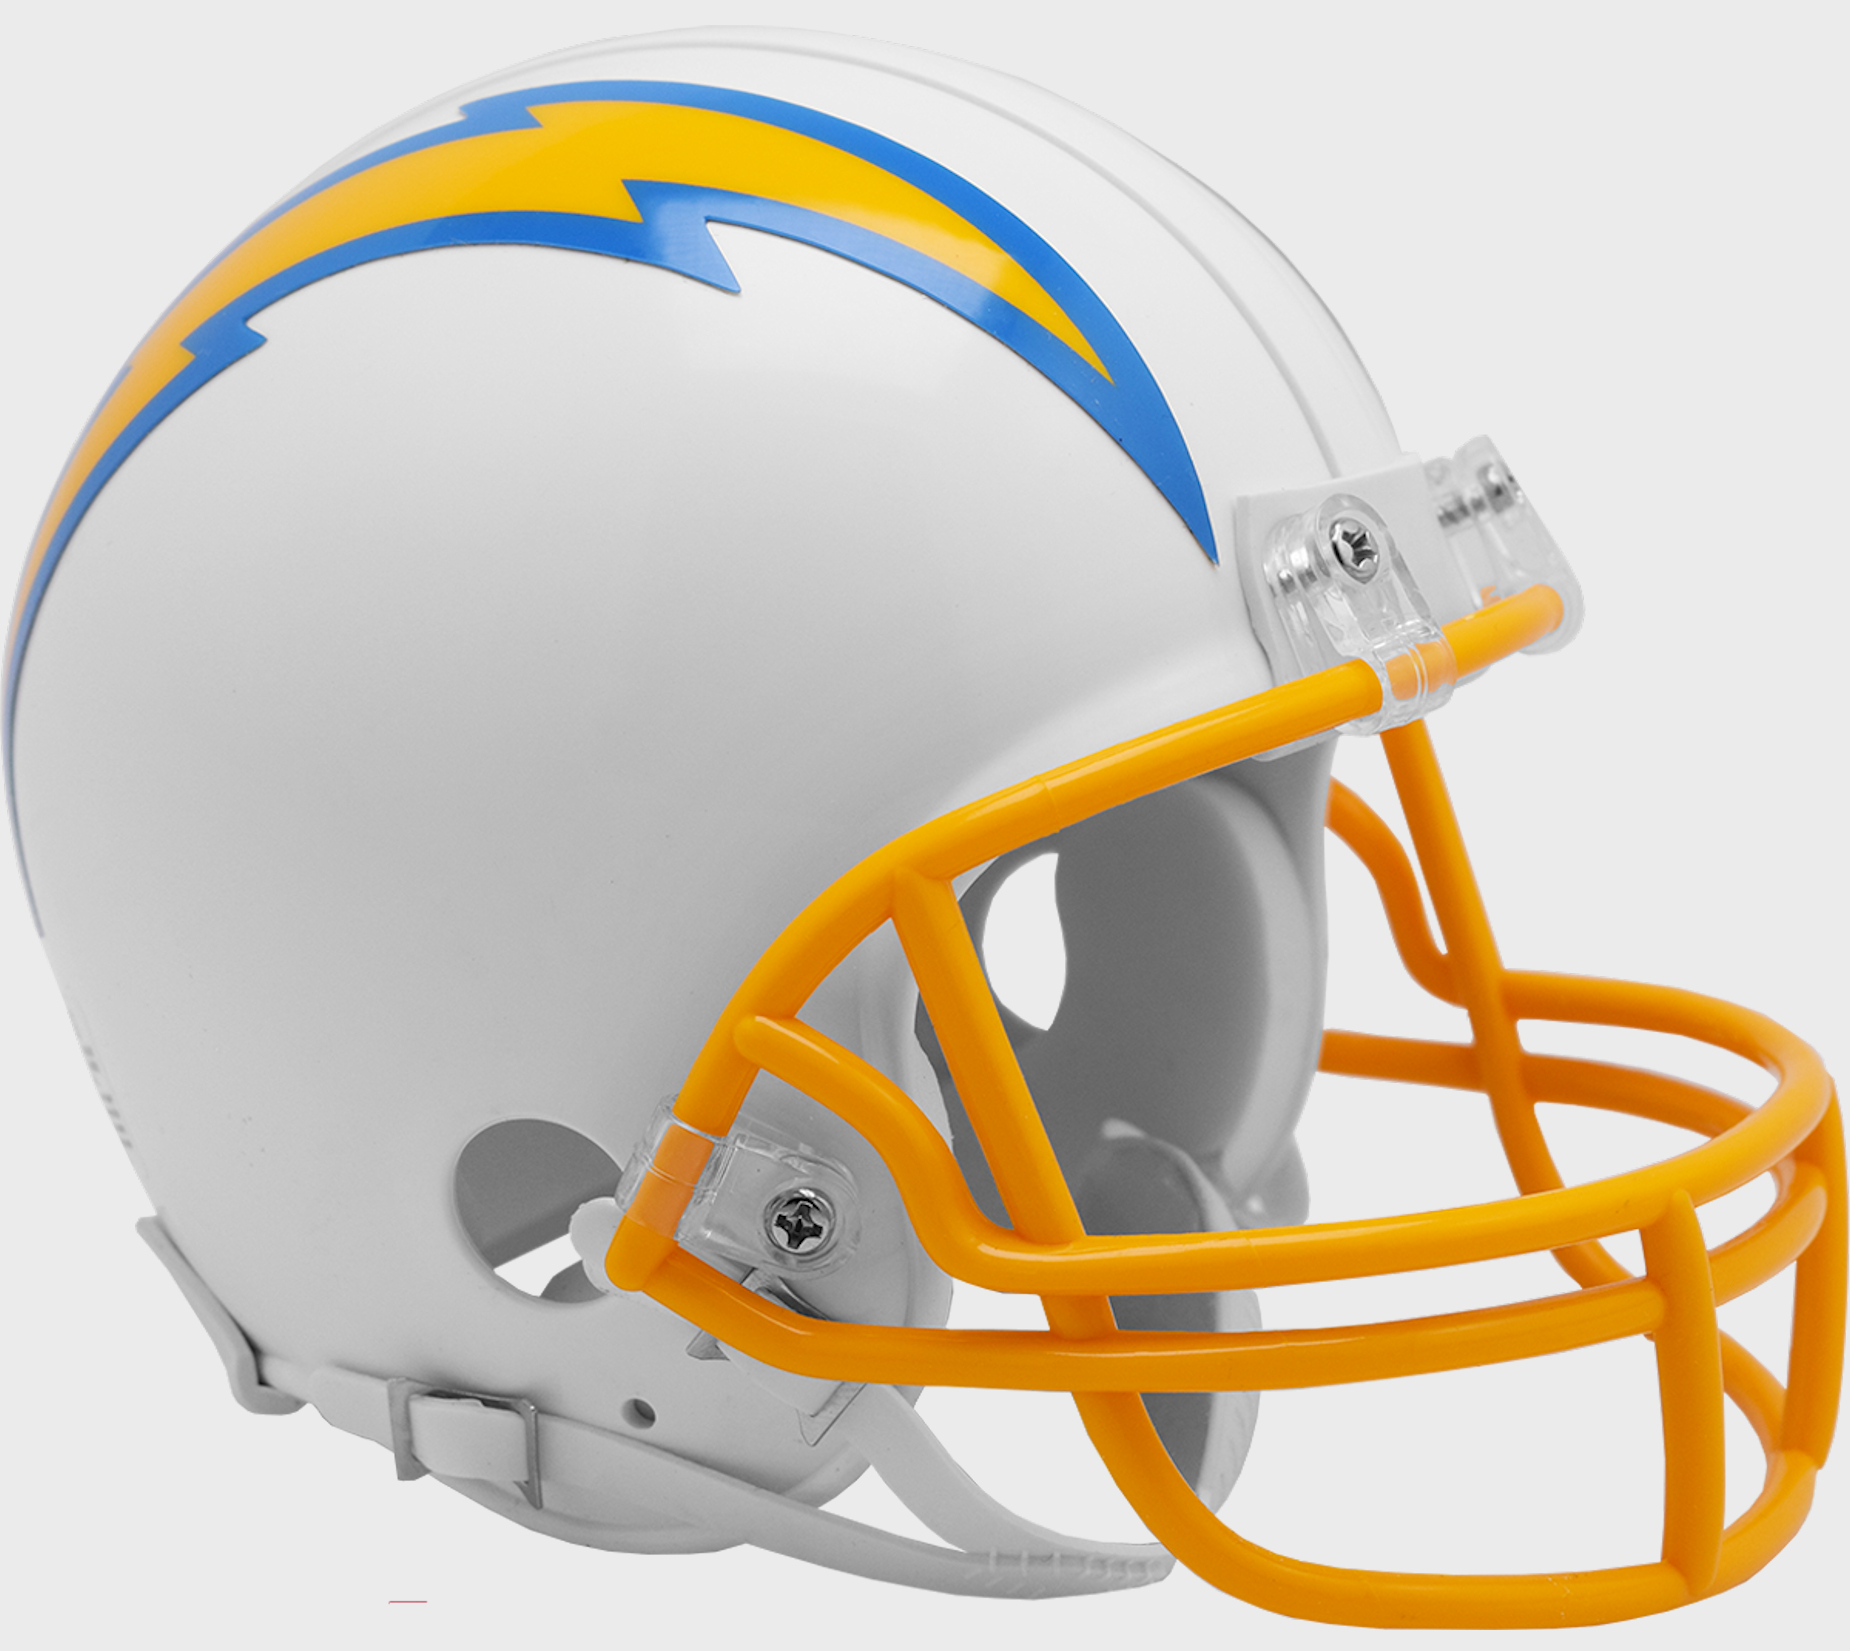 Los Angeles Chargers NFL Mini Football Helmet